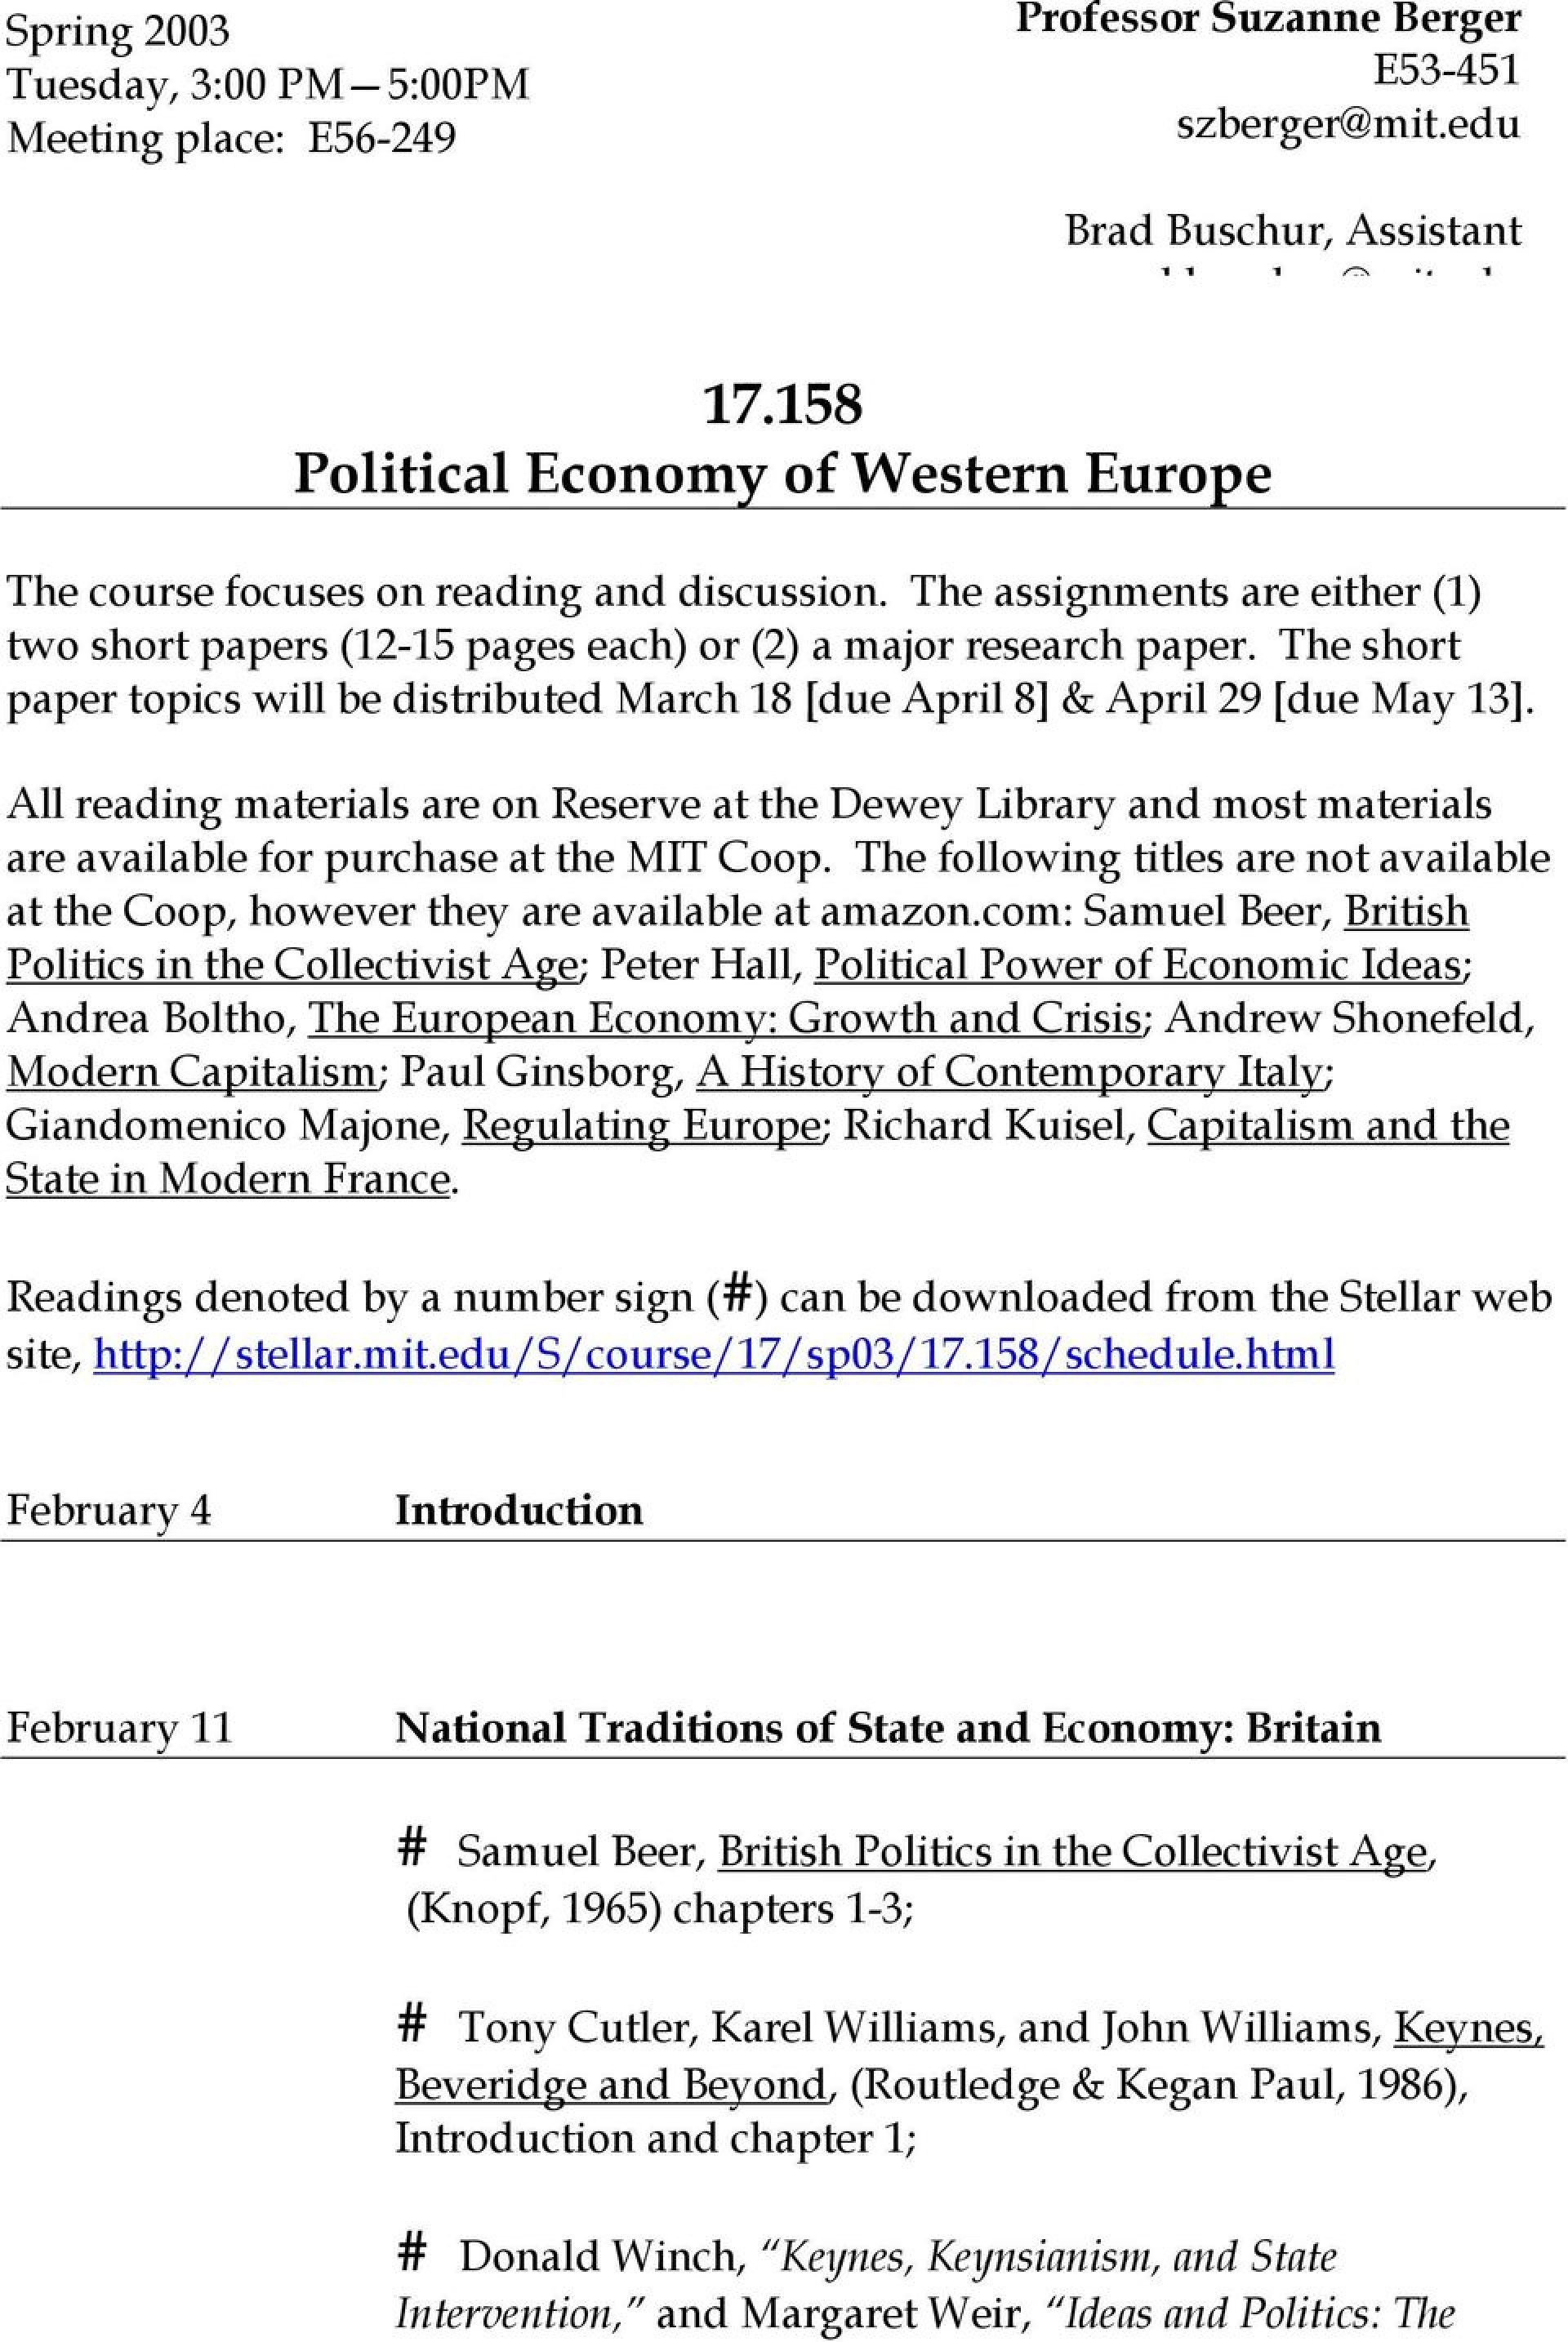 021 Research Paper Political Economy Topics Page 1 Awesome International Global 1920